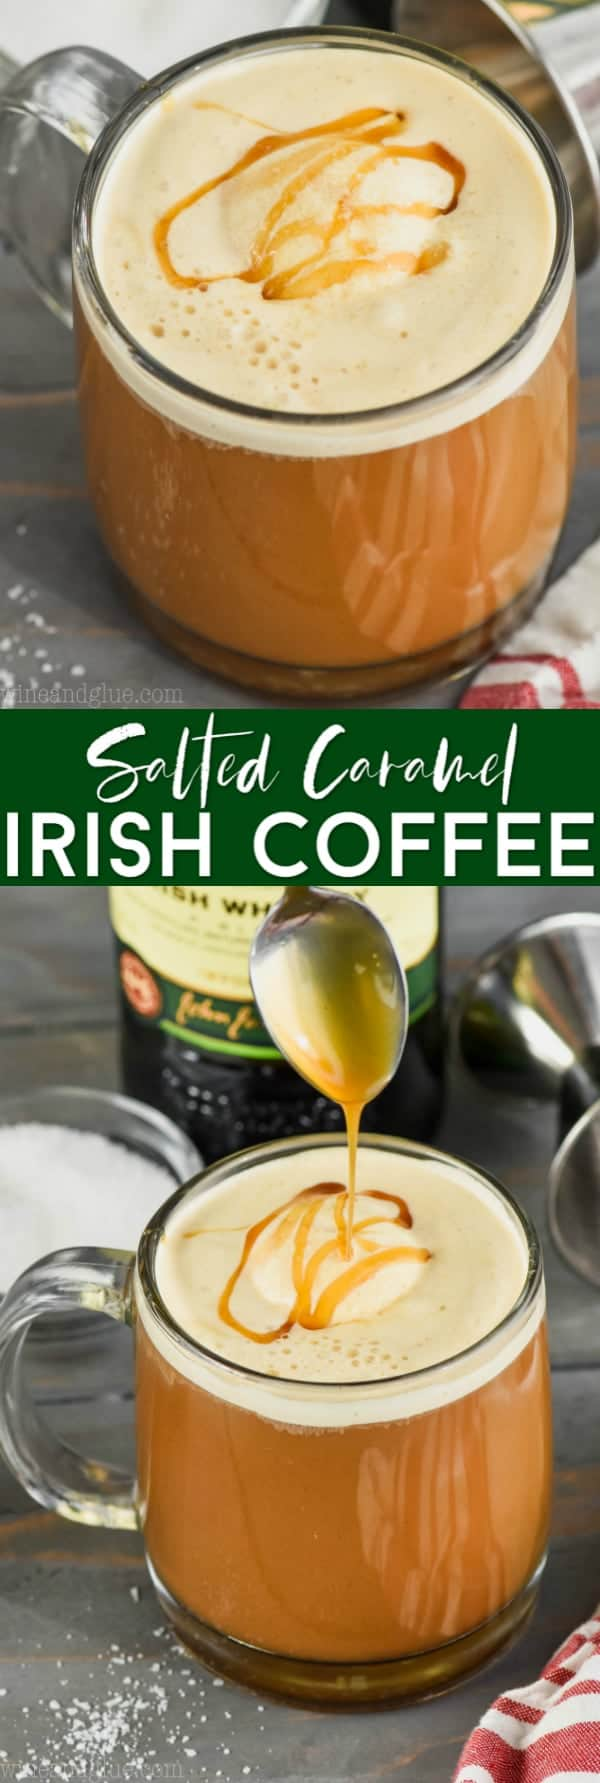 collage of photos of salted caramel irish coffee recipe